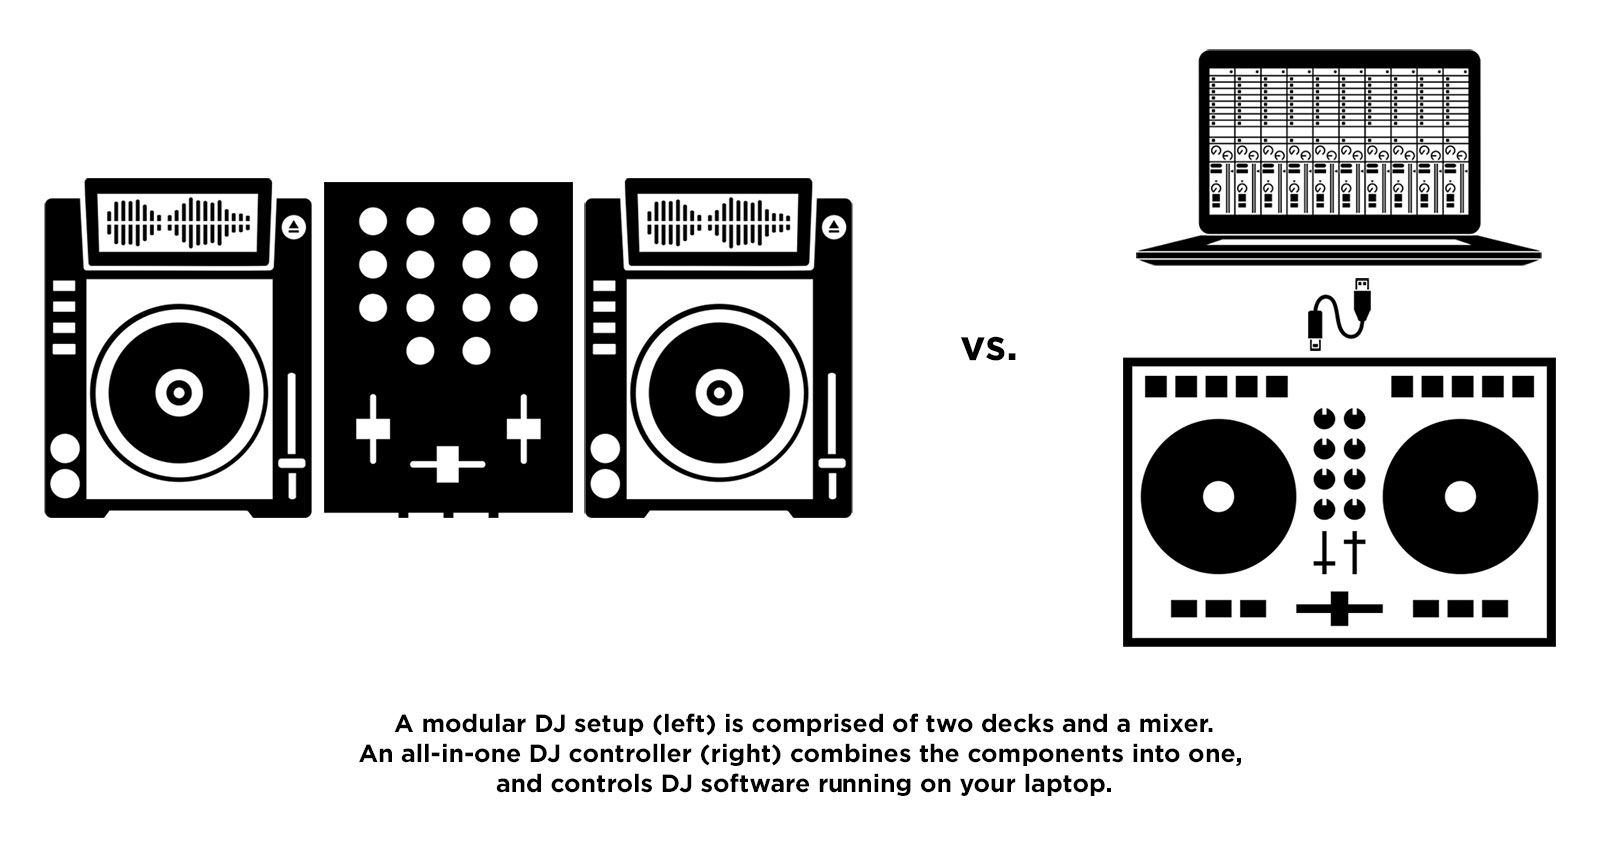 Modular vs. all-in-one DJ controllers